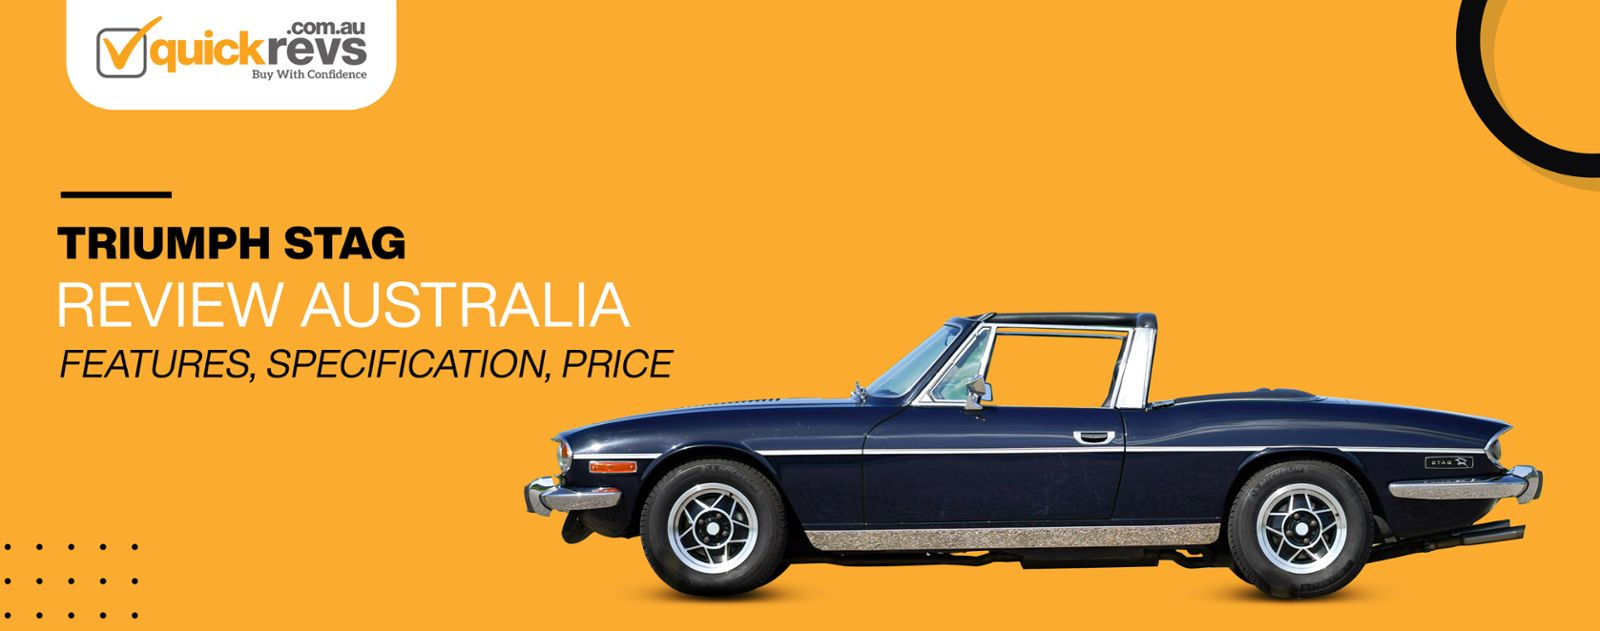 Triumph Stag Review Australia | Features, Specification, Price